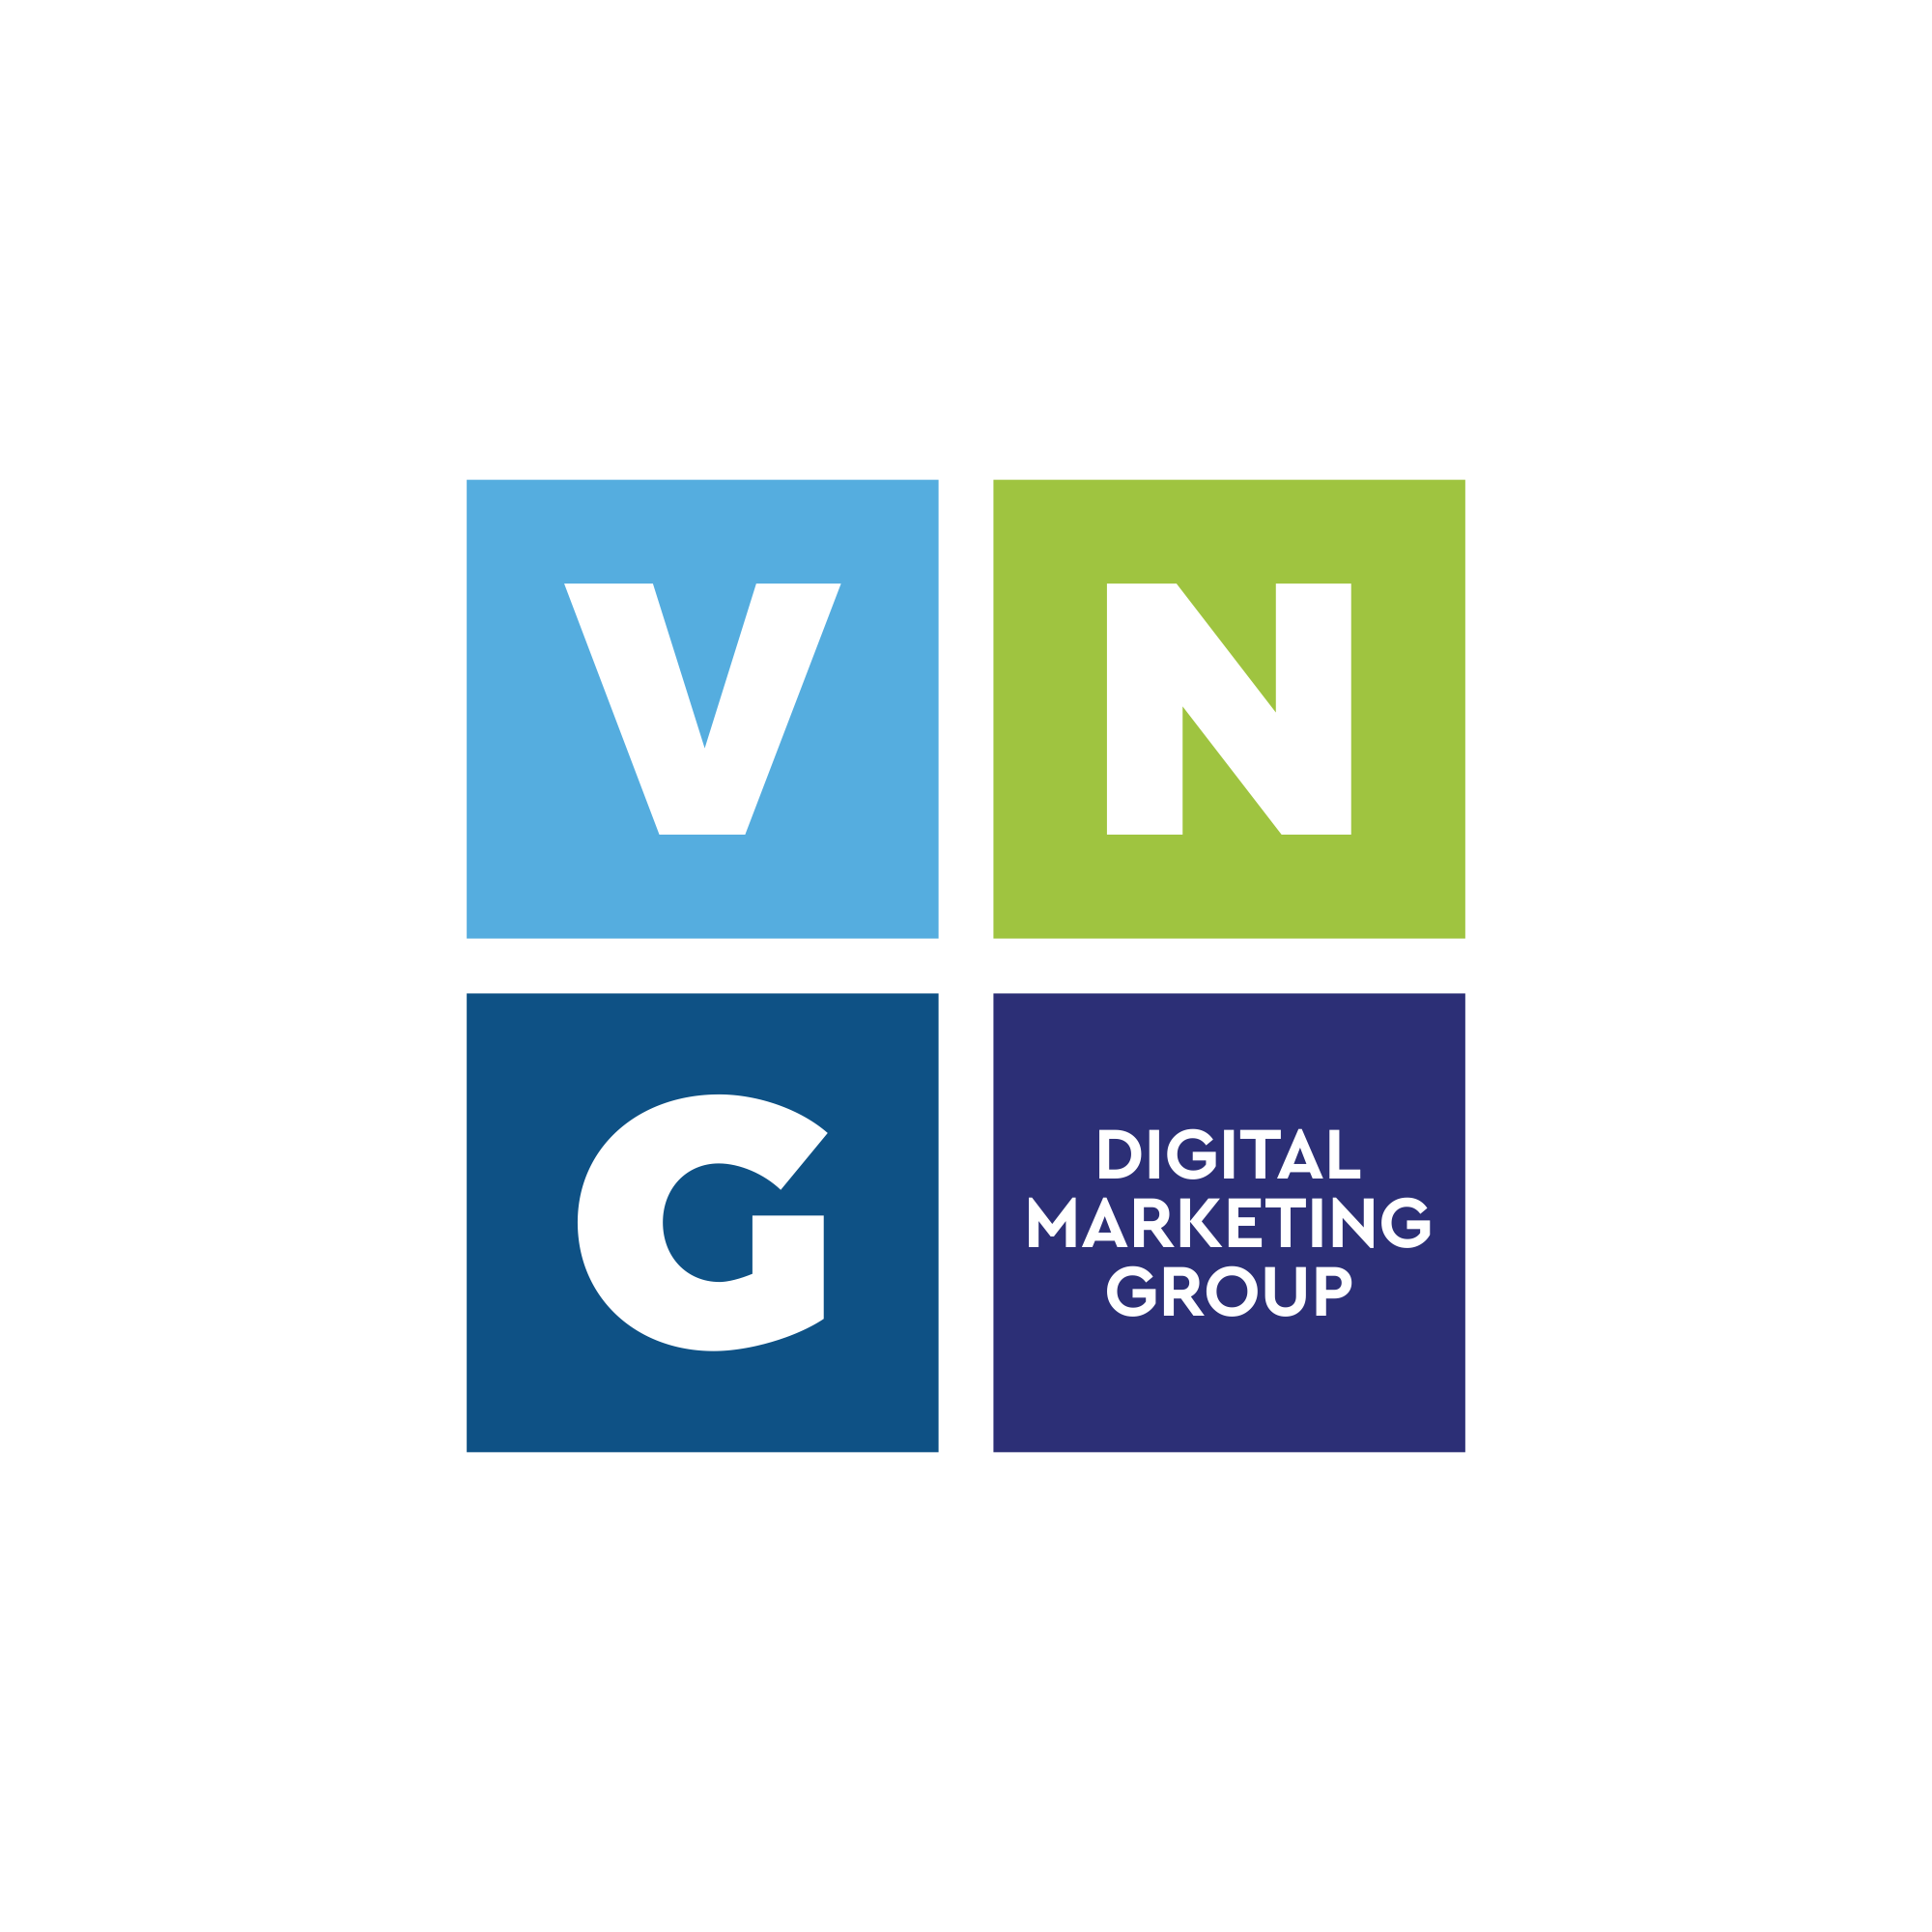 VNG Digital Marketing Group Logo